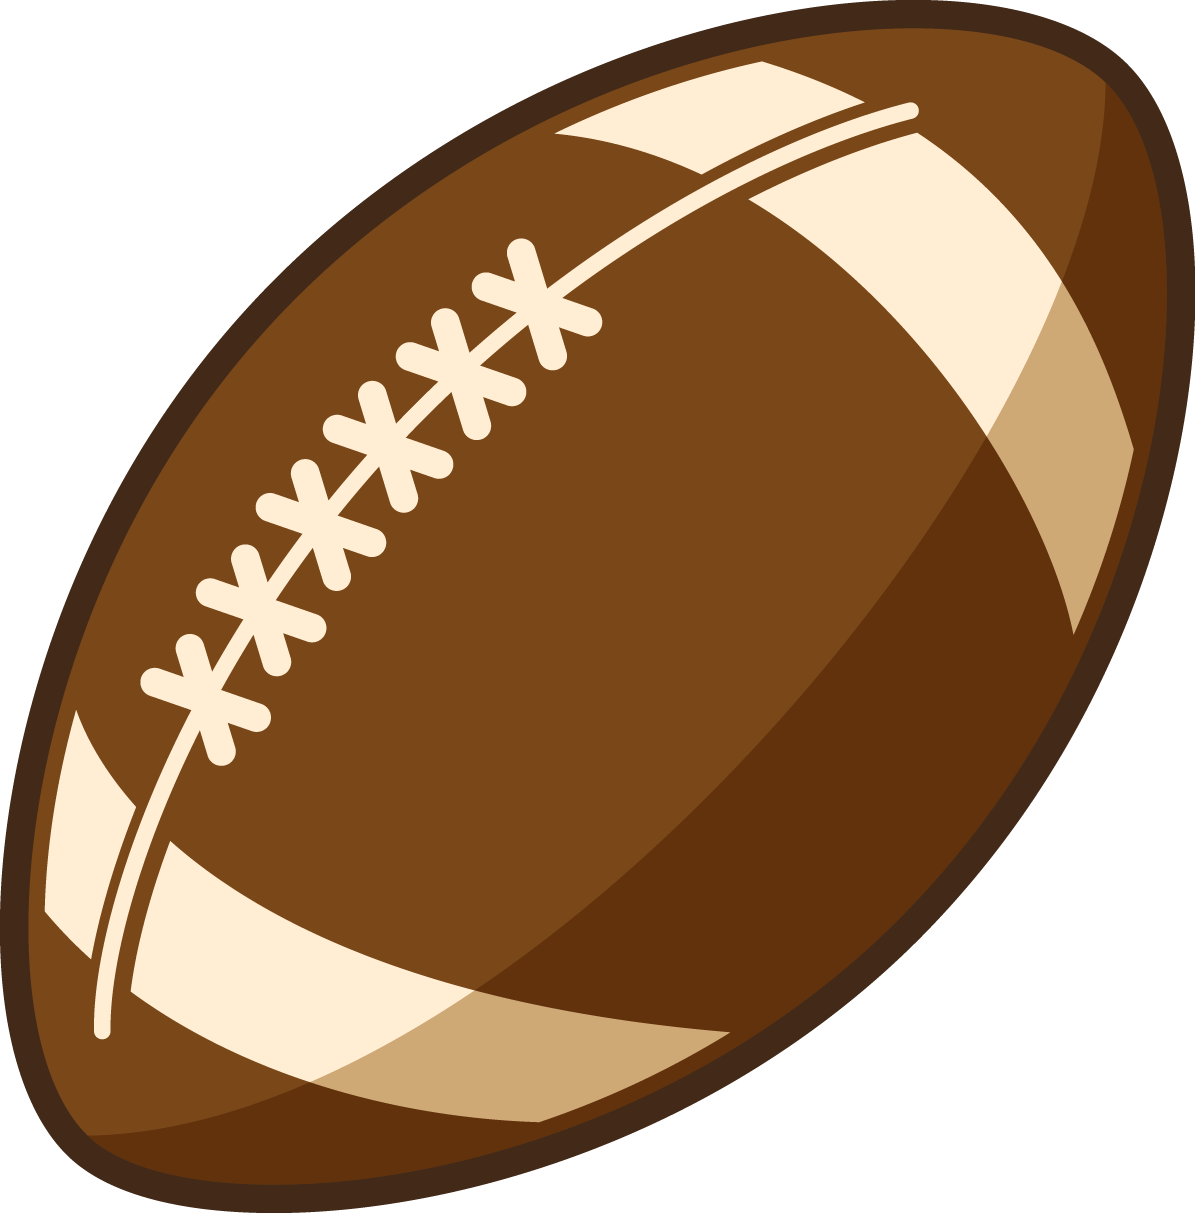 You are free to use this American football clip art on your sports  projects, magazines, e-books, presentations, blogs, videos, etc. Use this clip  art on ClipartLook.com